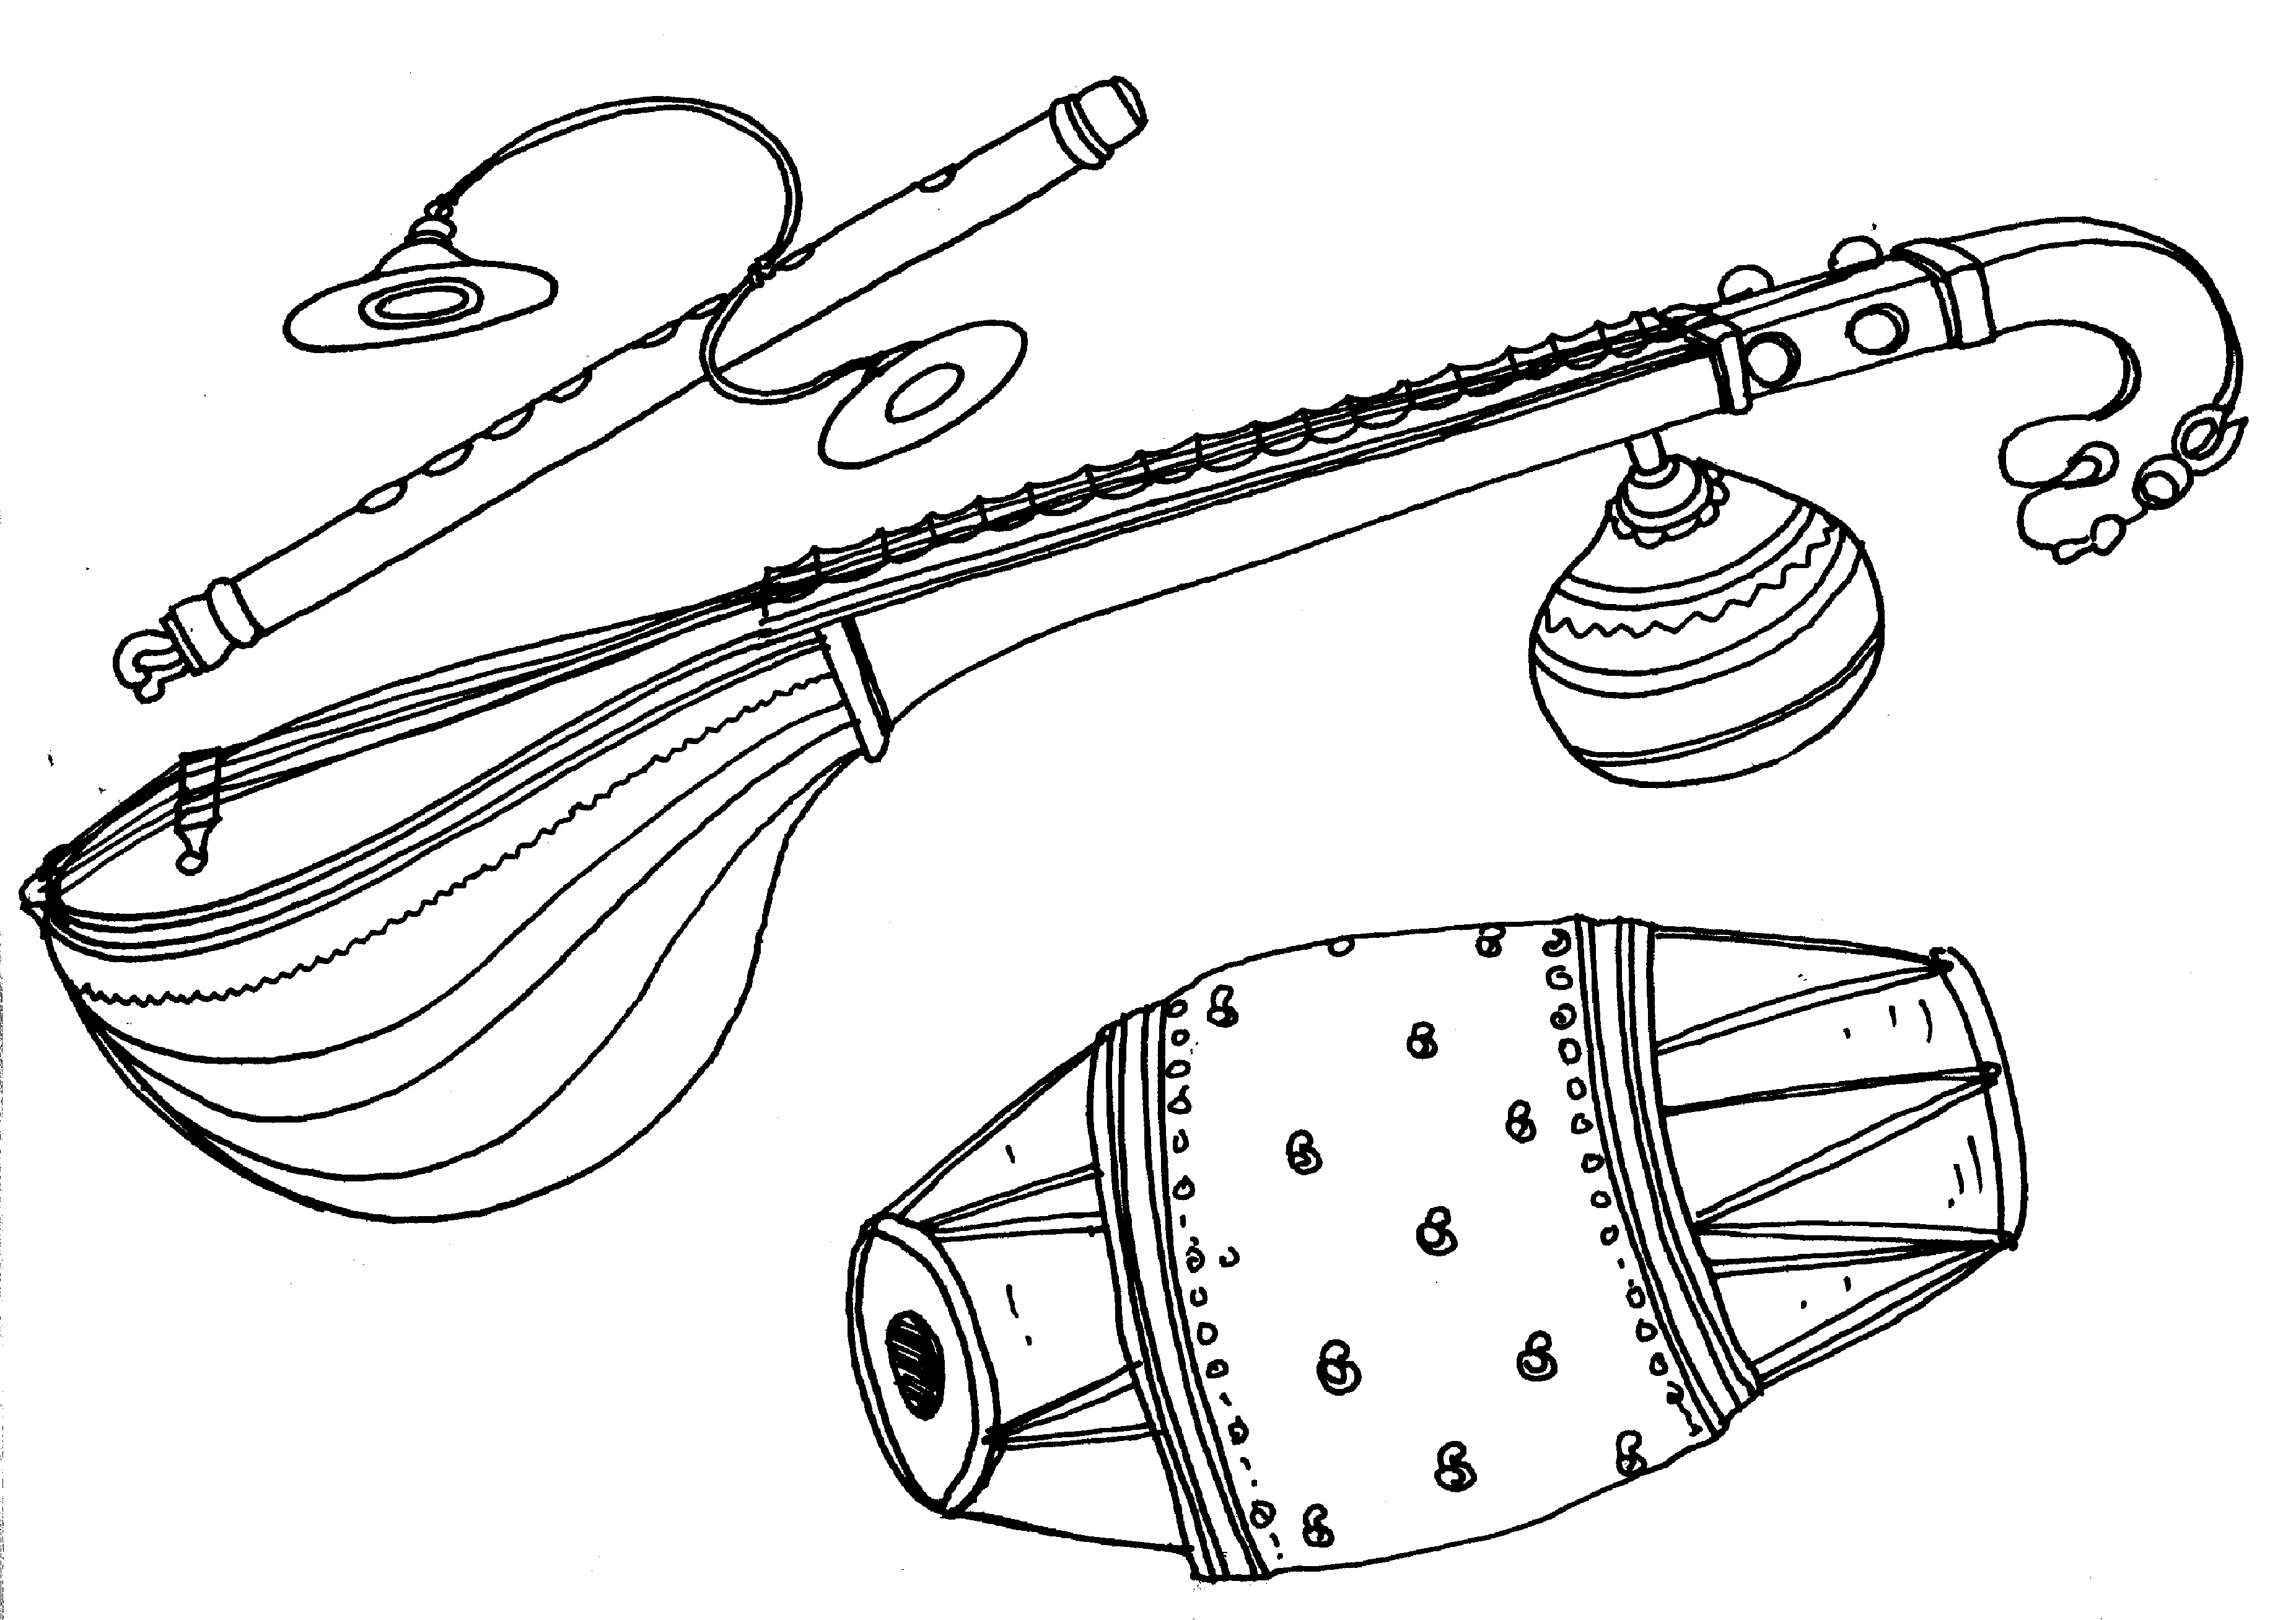 how to draw a musical instrument free musical instruments drawings download free clip art musical instrument draw a how to